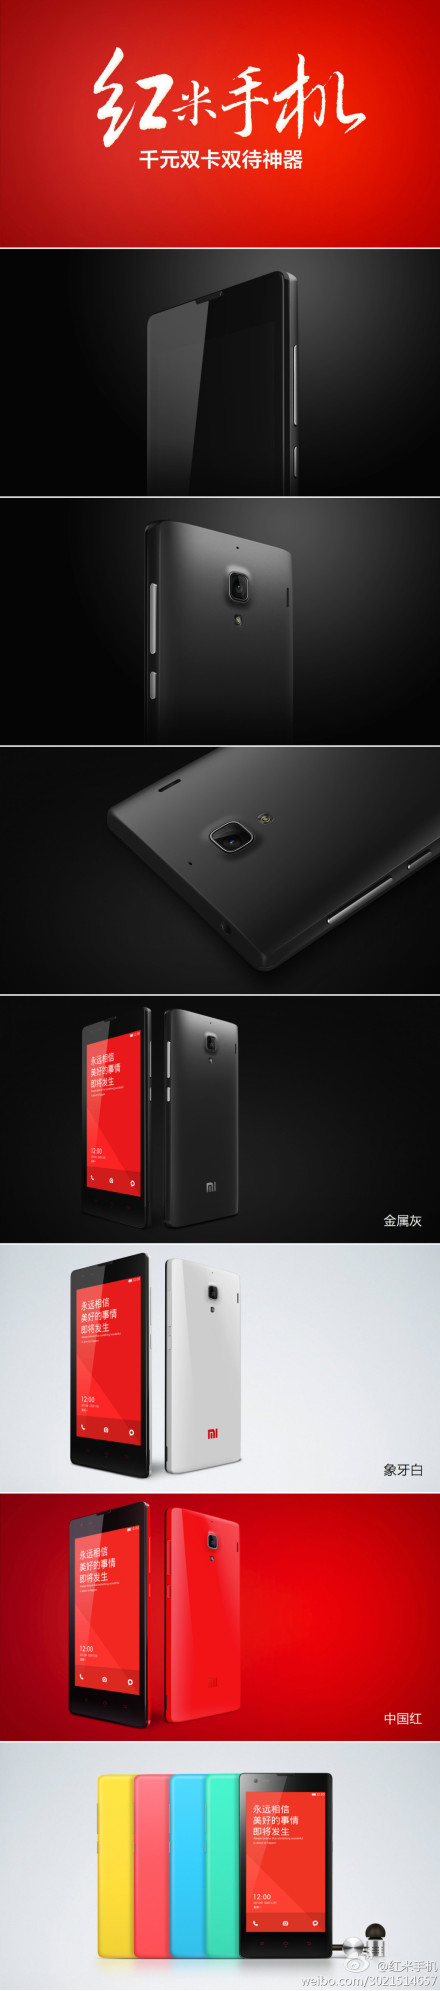 Xiaomi Red Rice Chinas Xiaomi unveils its lowest priced phone yet, the $130 Red Rice